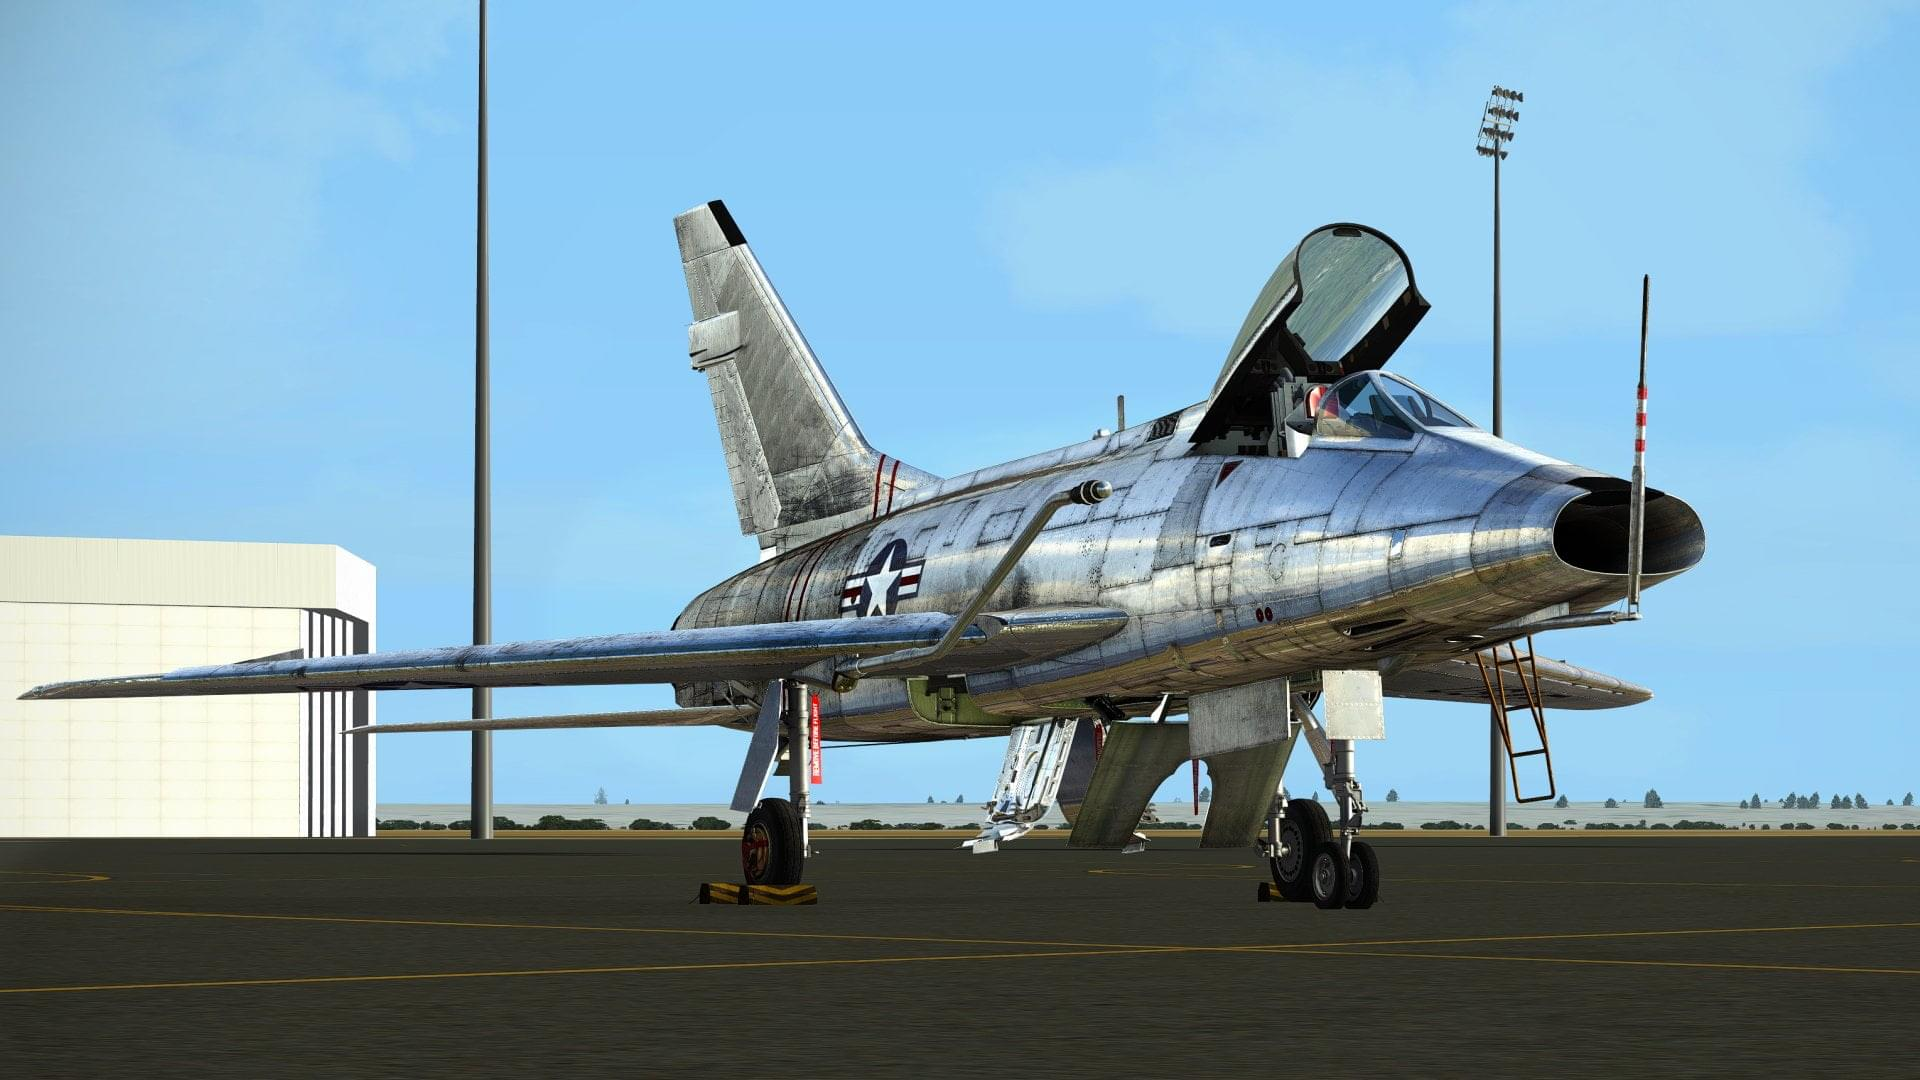 FSX/P3D News ONLY (not discussion) - Page 34 - ED Forums